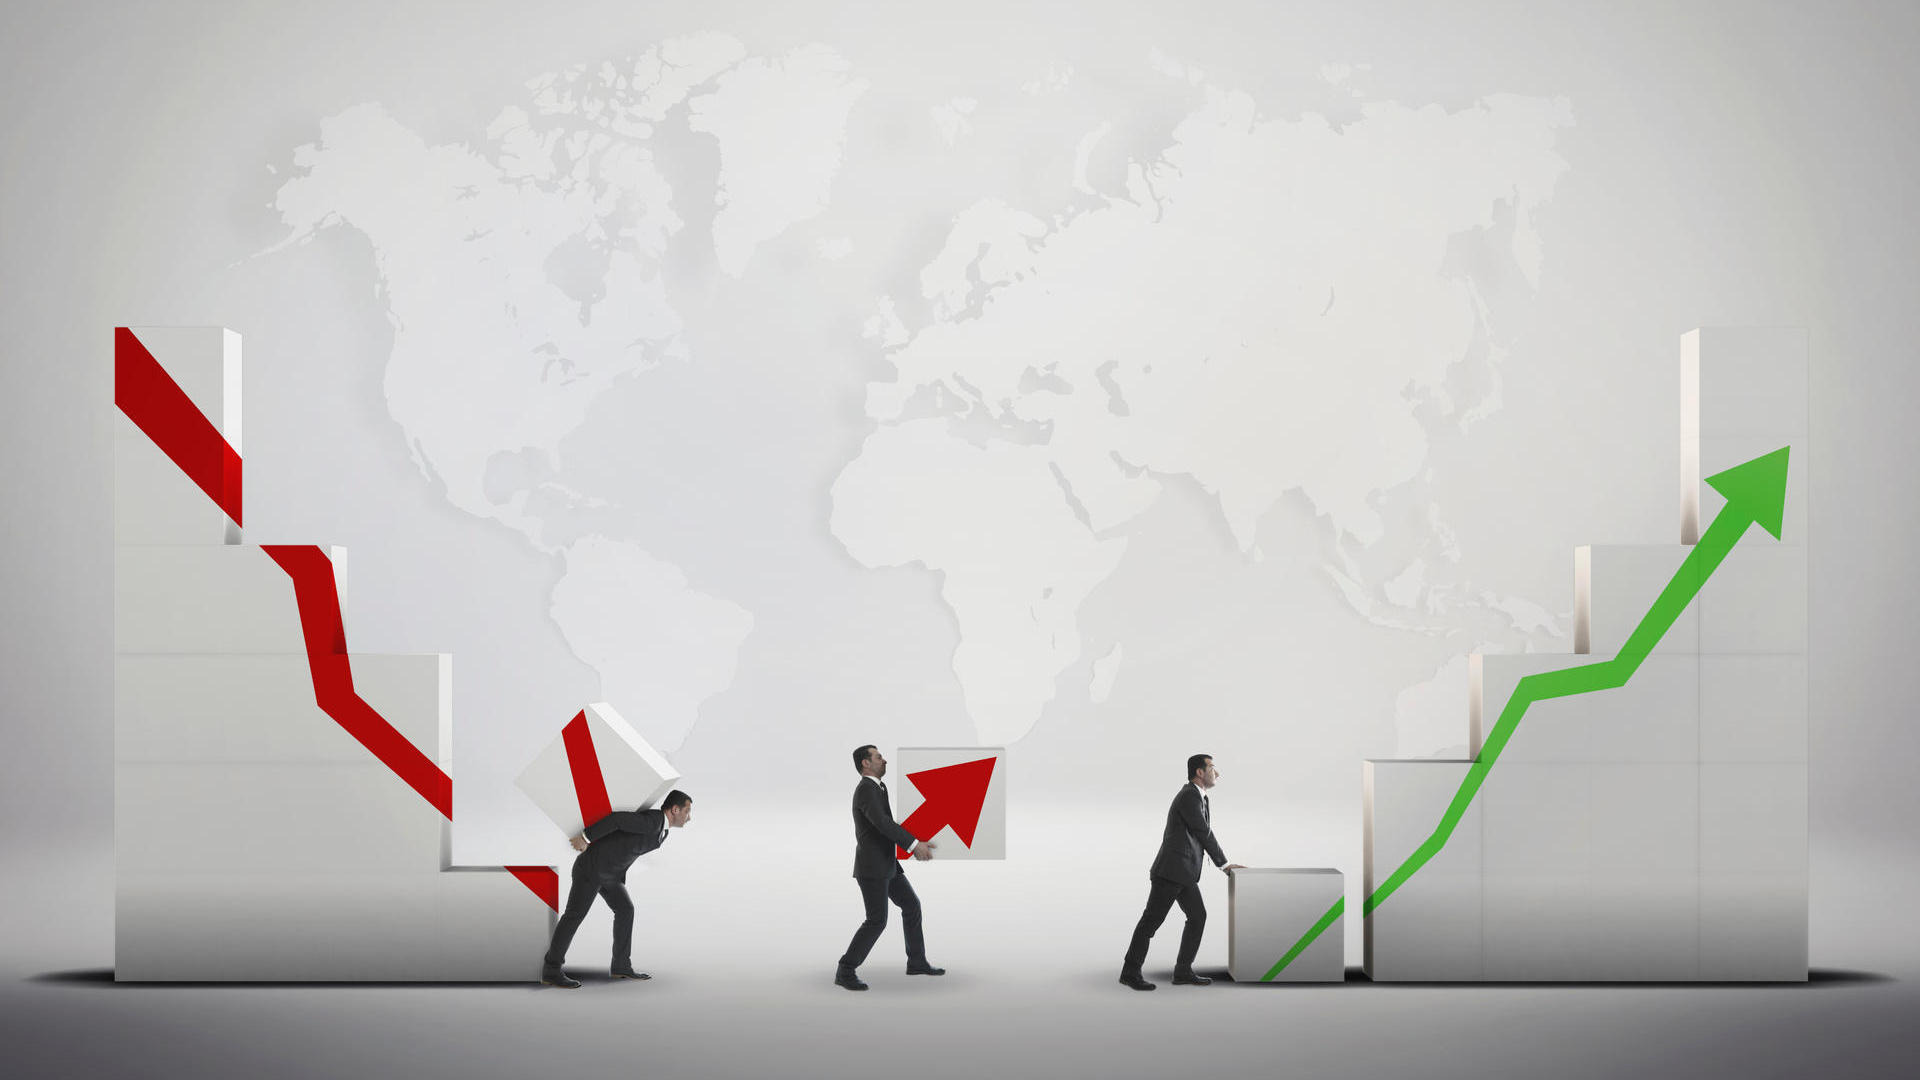 Stock Market Crash and Escape - Global Business Strategy Exchange (Quelle: Thinkstock by Getty-Images)